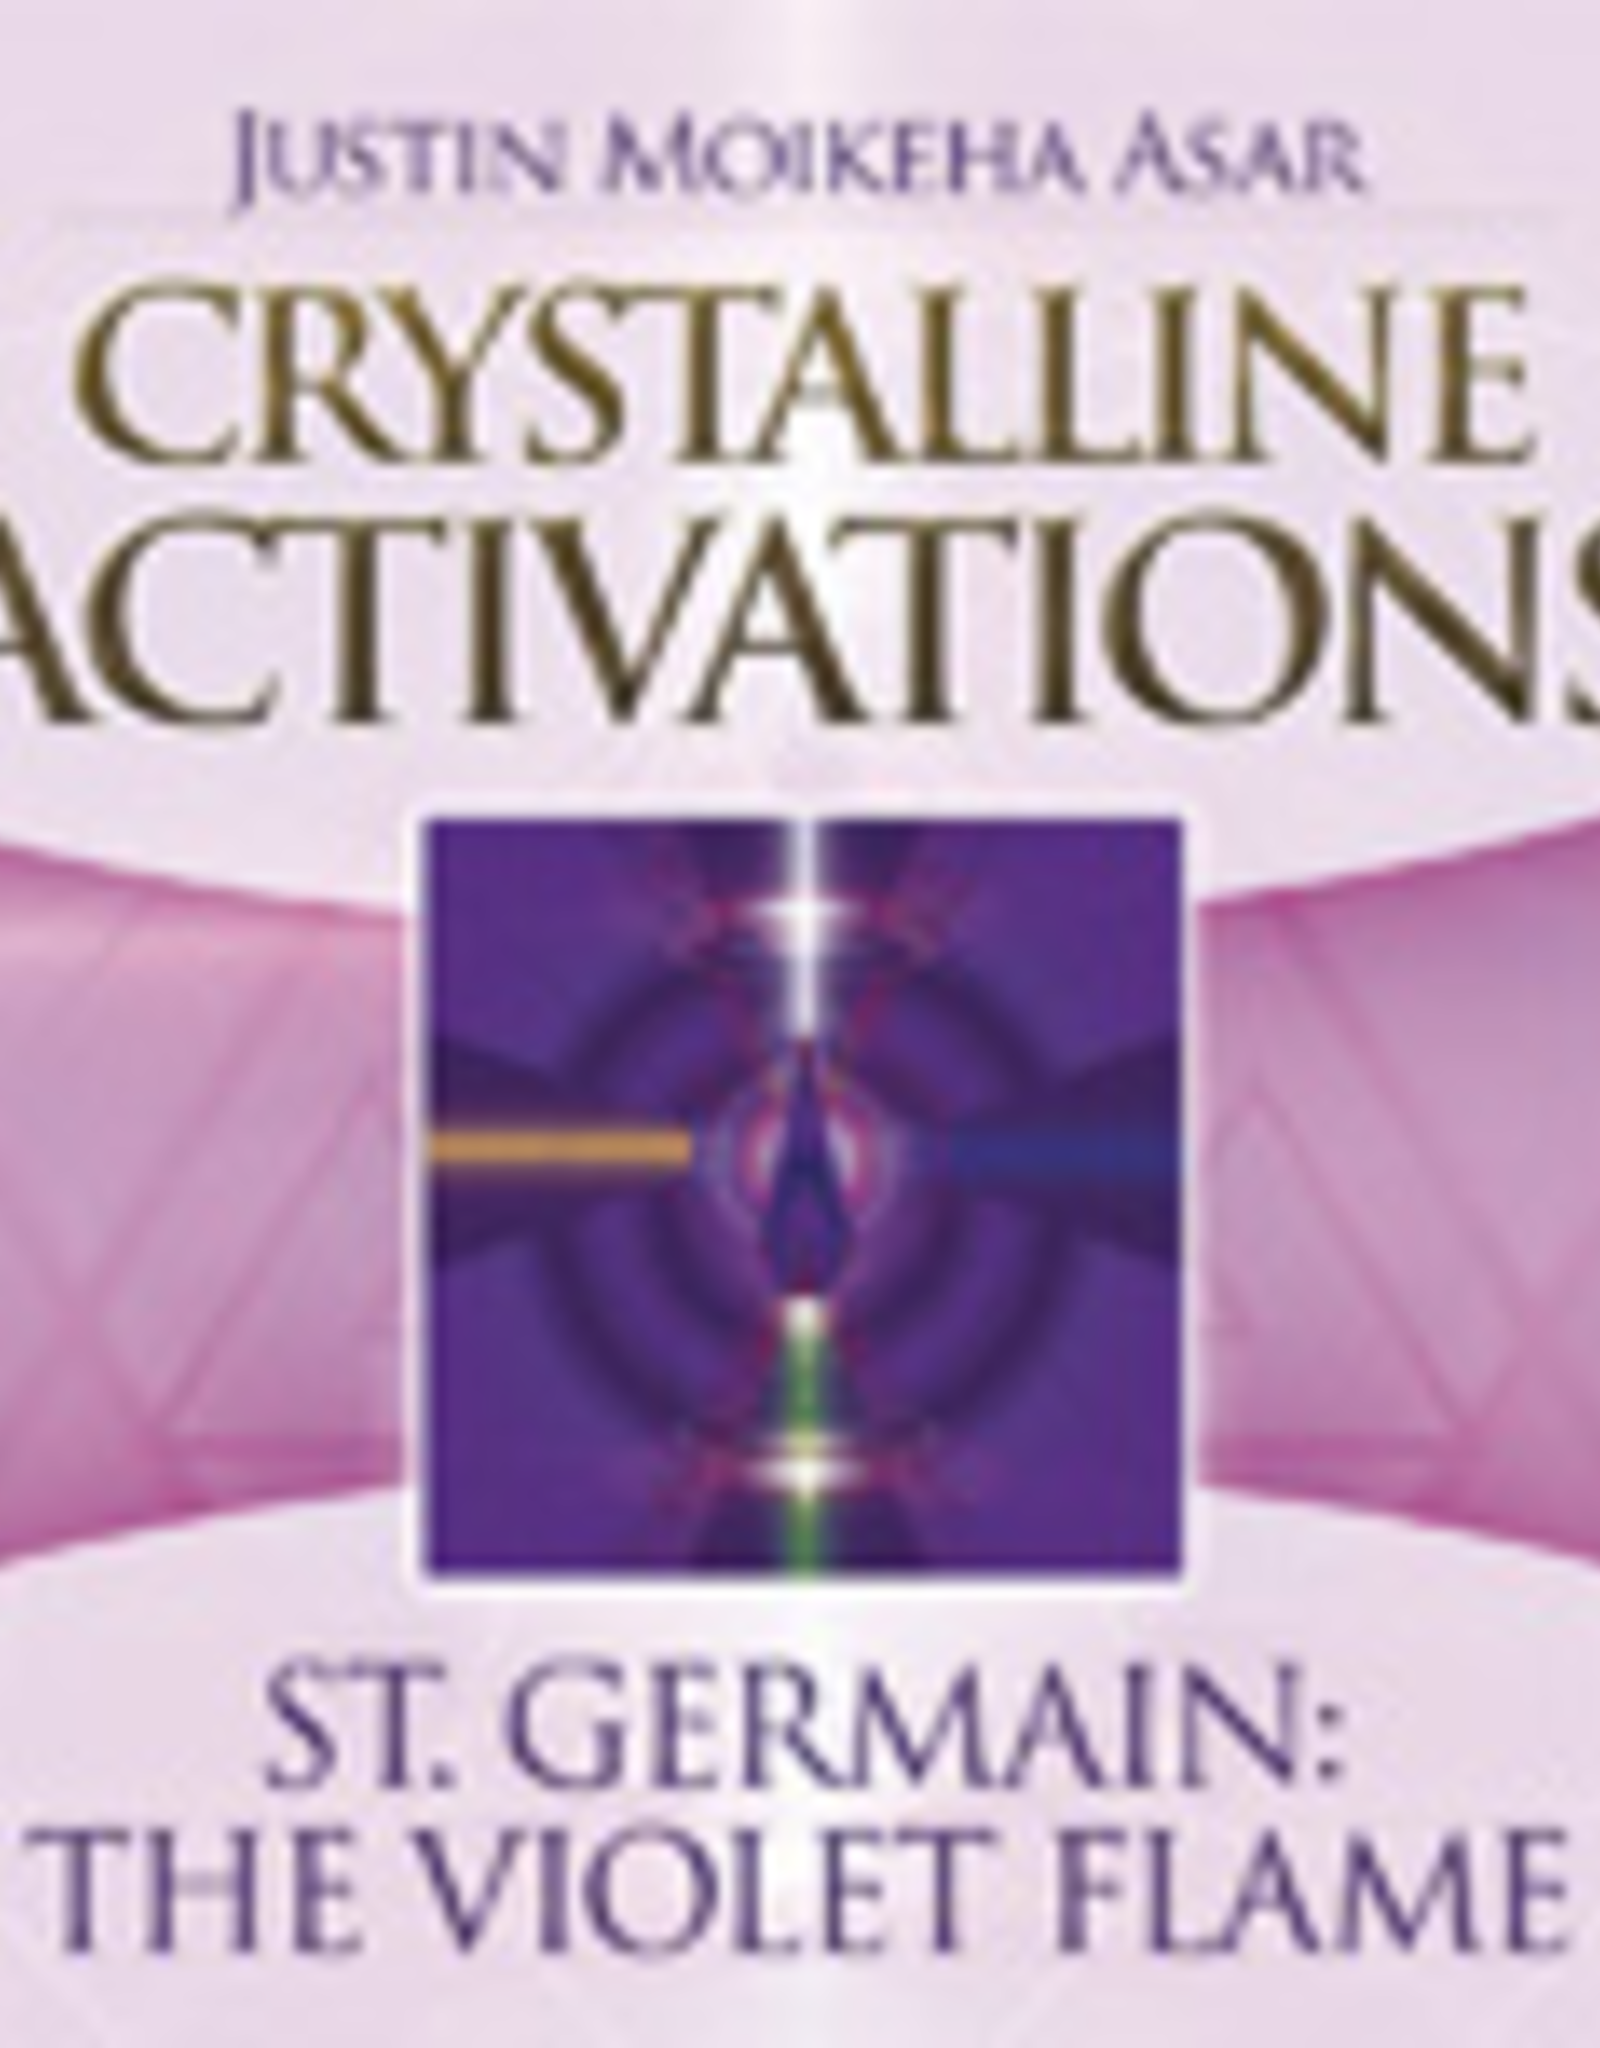 Crystalline Activations St Germain: The Violet Flame CD